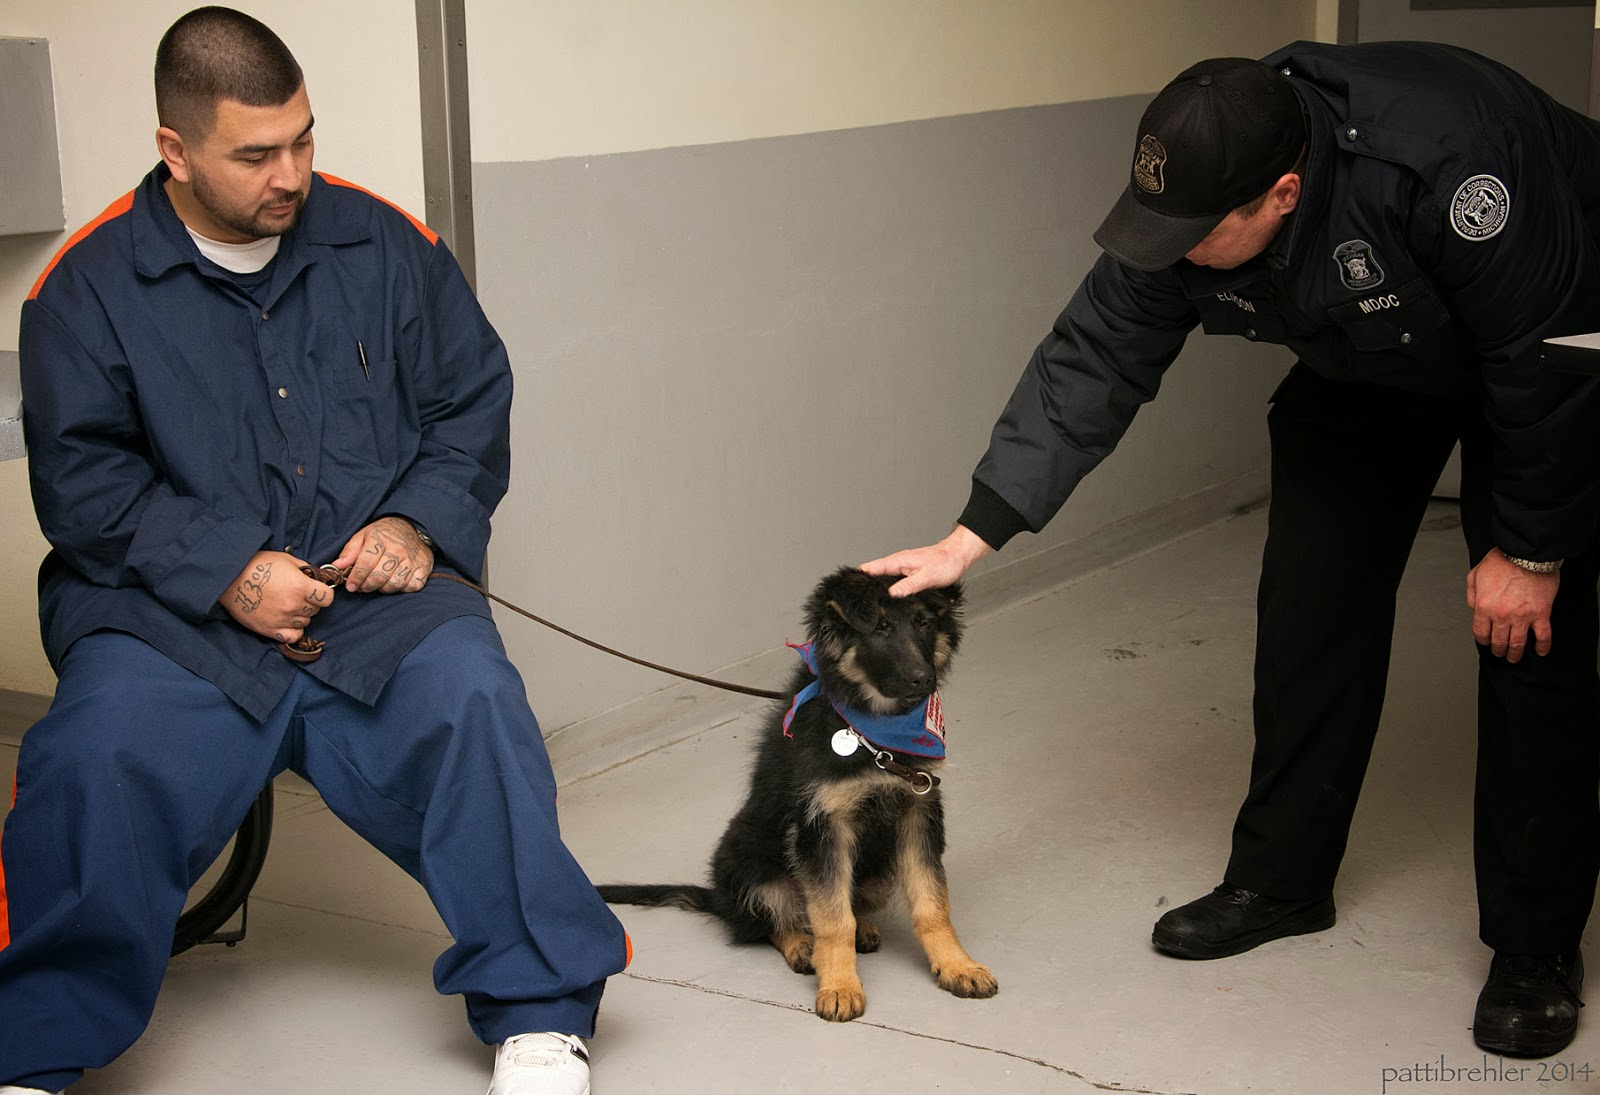 A young man dressed in the blue prison uniform (with orange stripes on the shoulders and legs) is sitting on the left side, holding the leash of a small german shepherd puppy. A guard dressed in black is leaning over the puppy on the right side, his right hand is petting the puppy on its head.